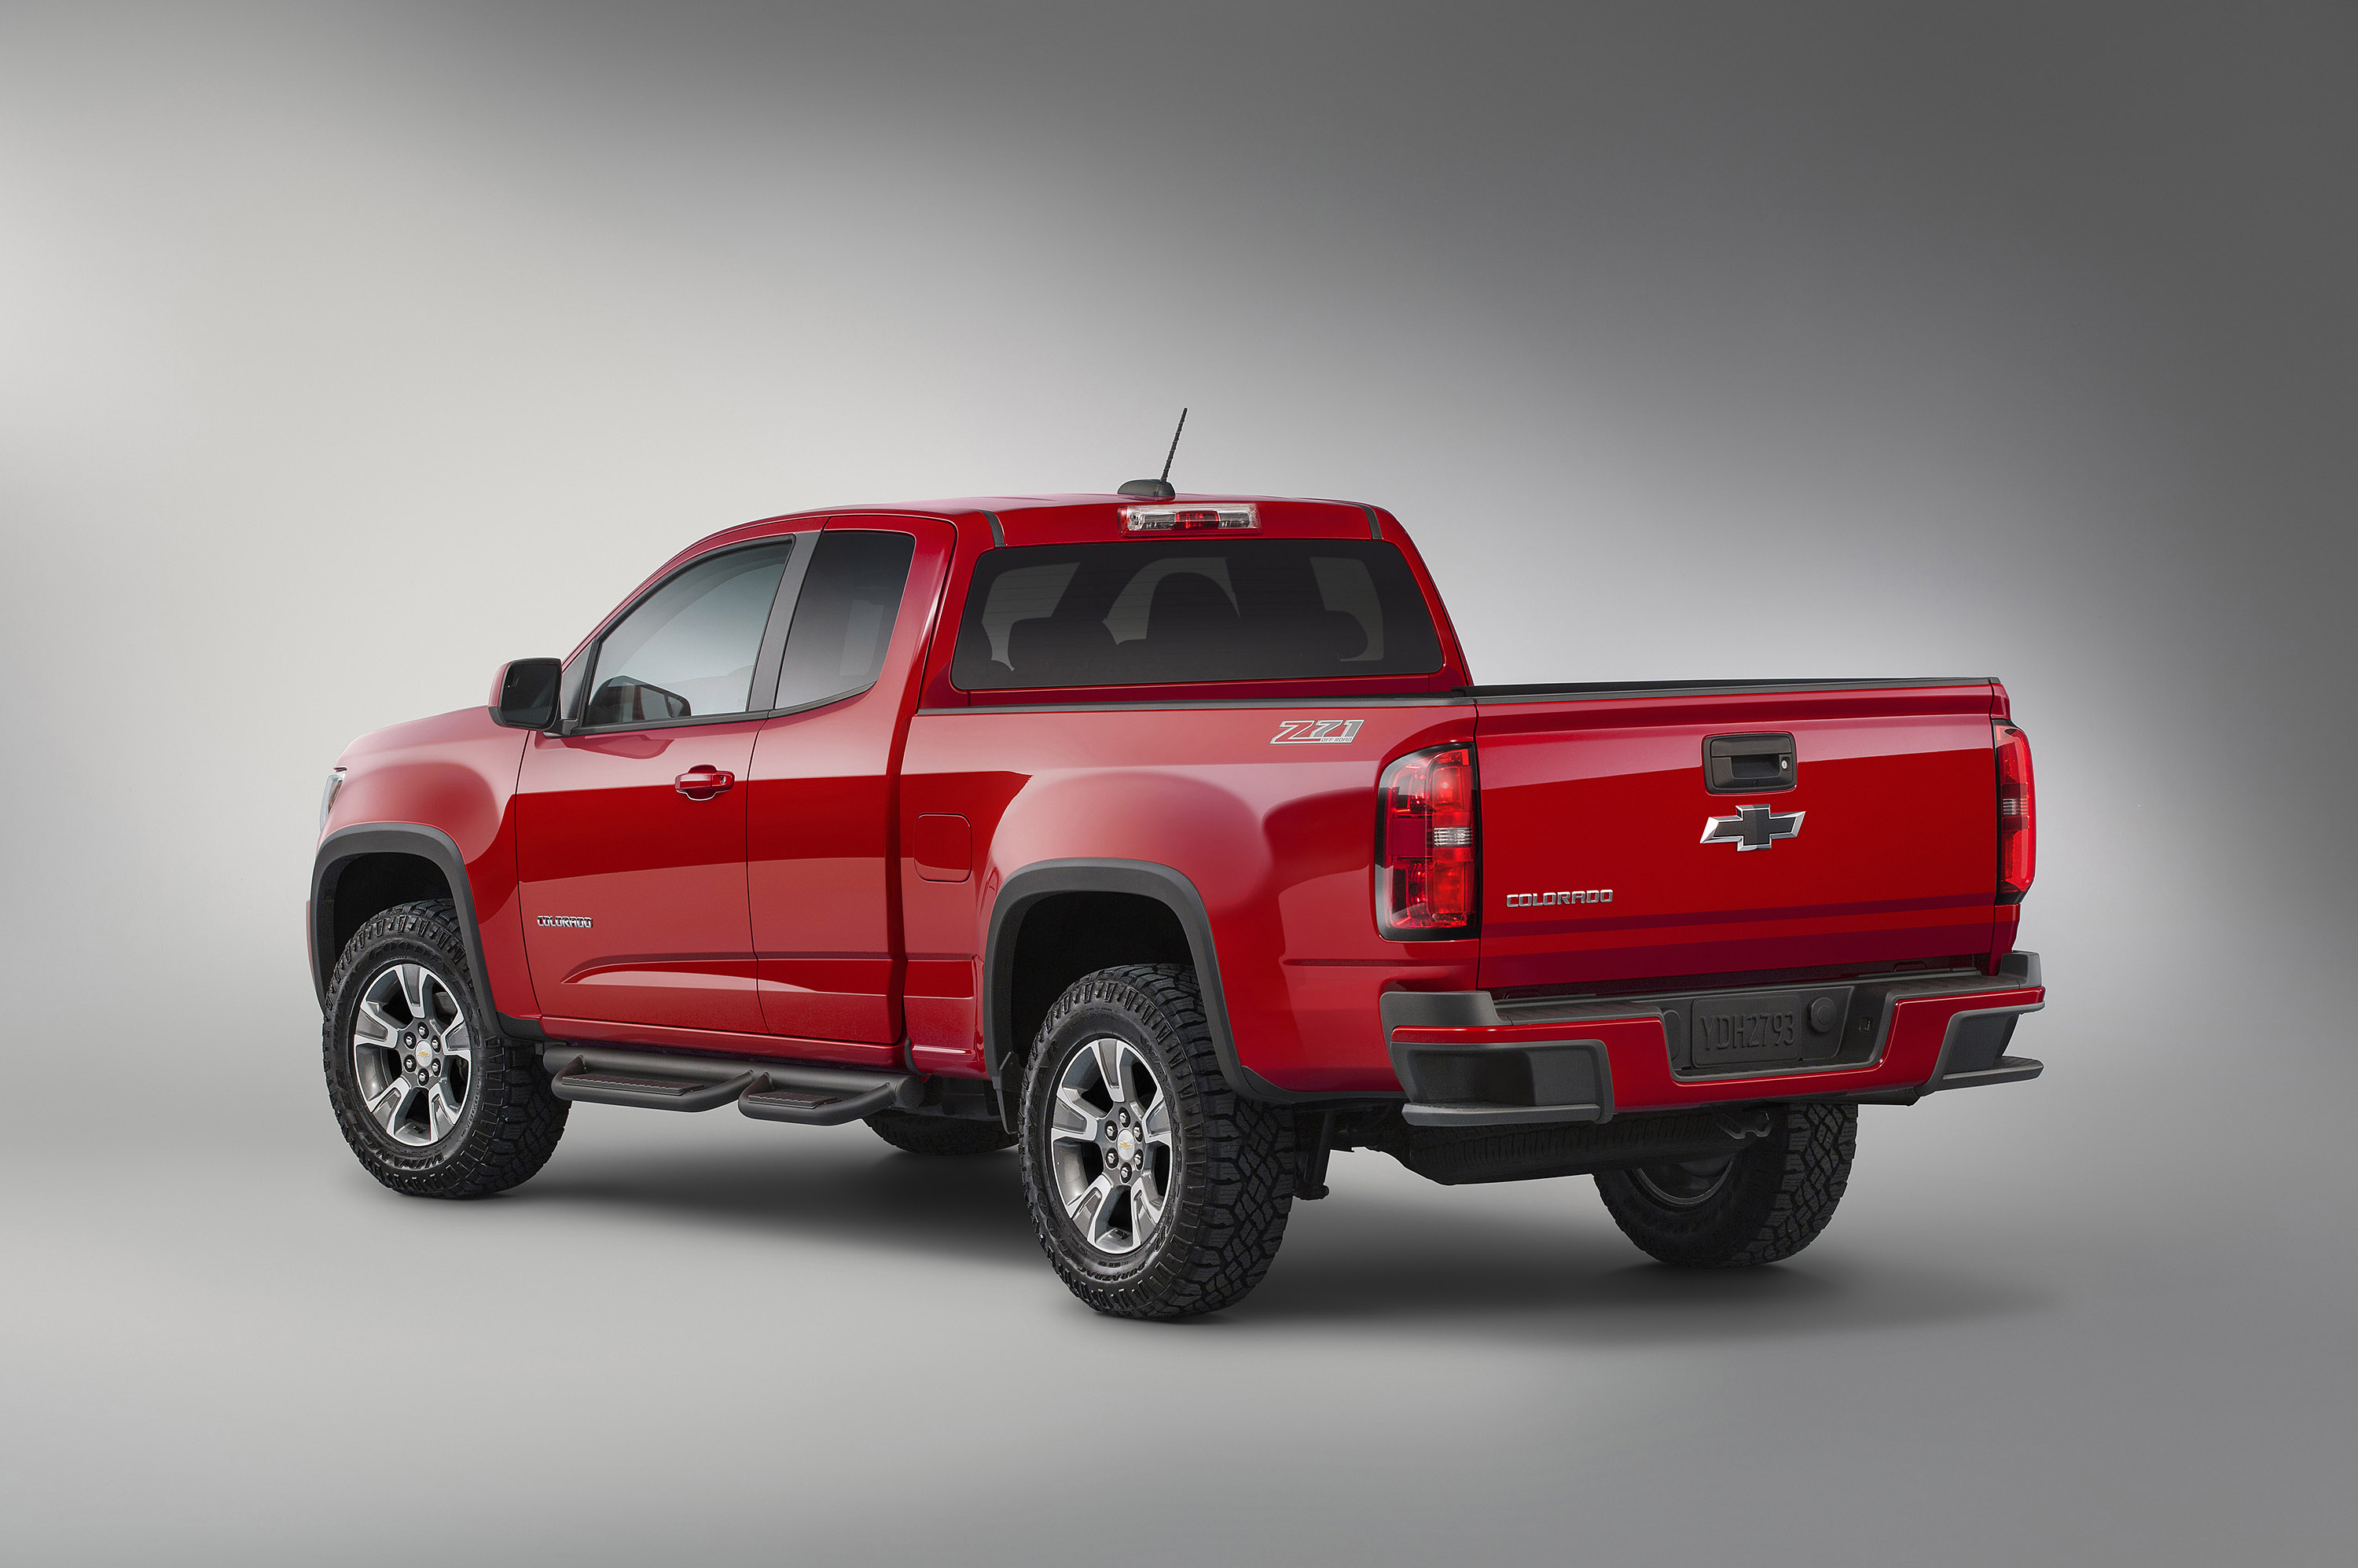 chevrolet shows colorado trail boss edition in cleveland video. Black Bedroom Furniture Sets. Home Design Ideas